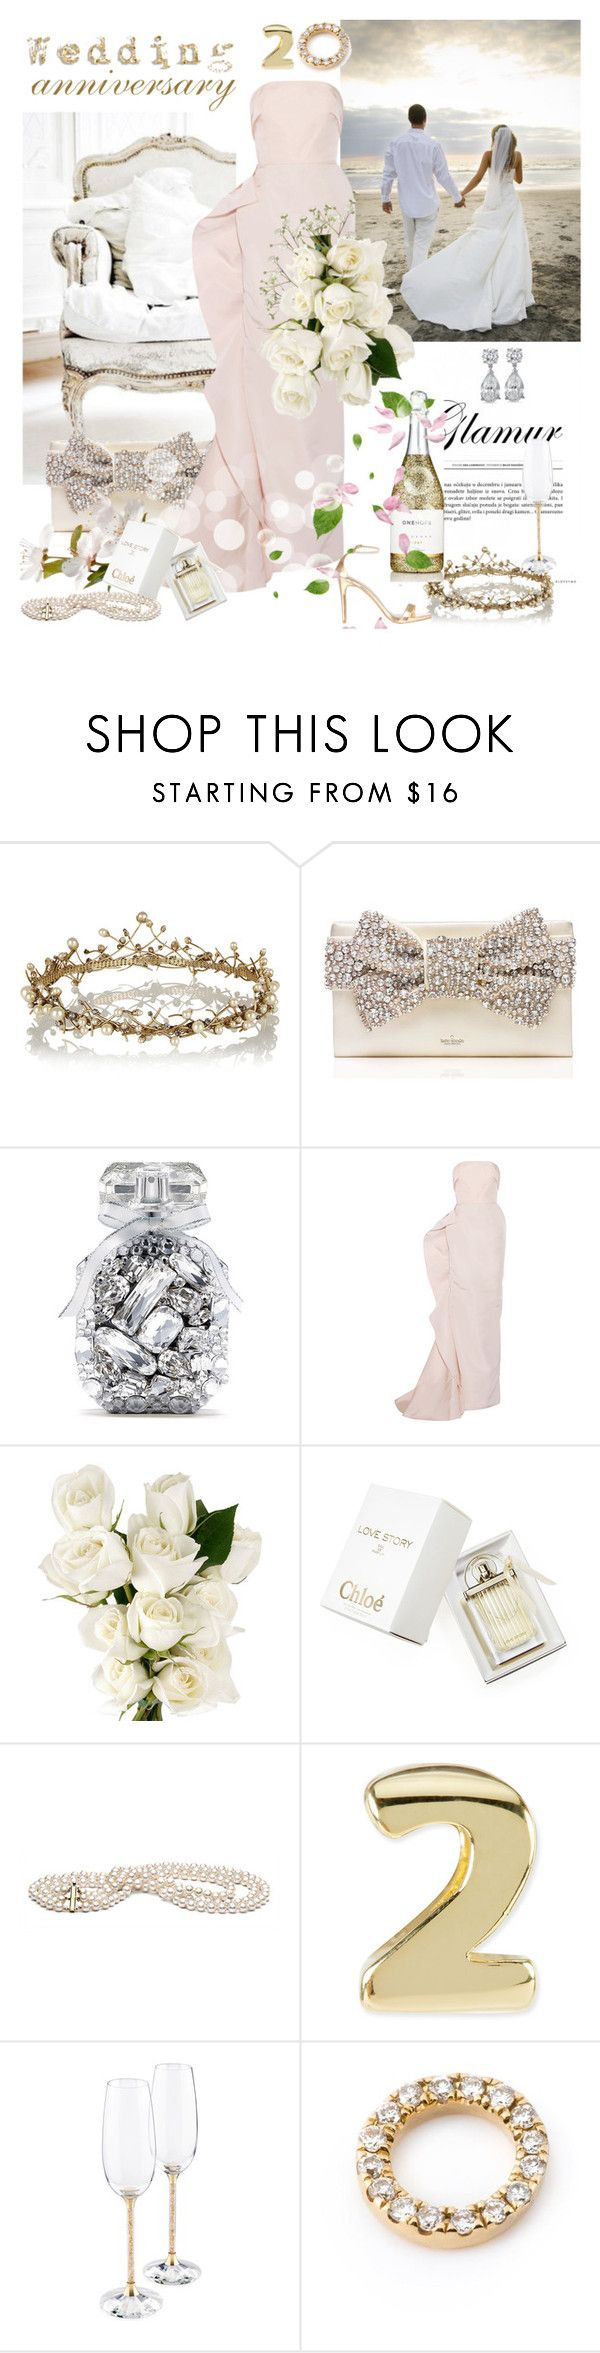 """""""Our 20 Years Wedding Anniversary"""" by rever-de-paris ❤ liked on Polyvore featuring Erickson Beamon, Kate Spade, Victoria's Secret, Steve Madden, Marchesa, Rebecca White, Chloé, Kendra Scott, Swarovski and Loquet"""